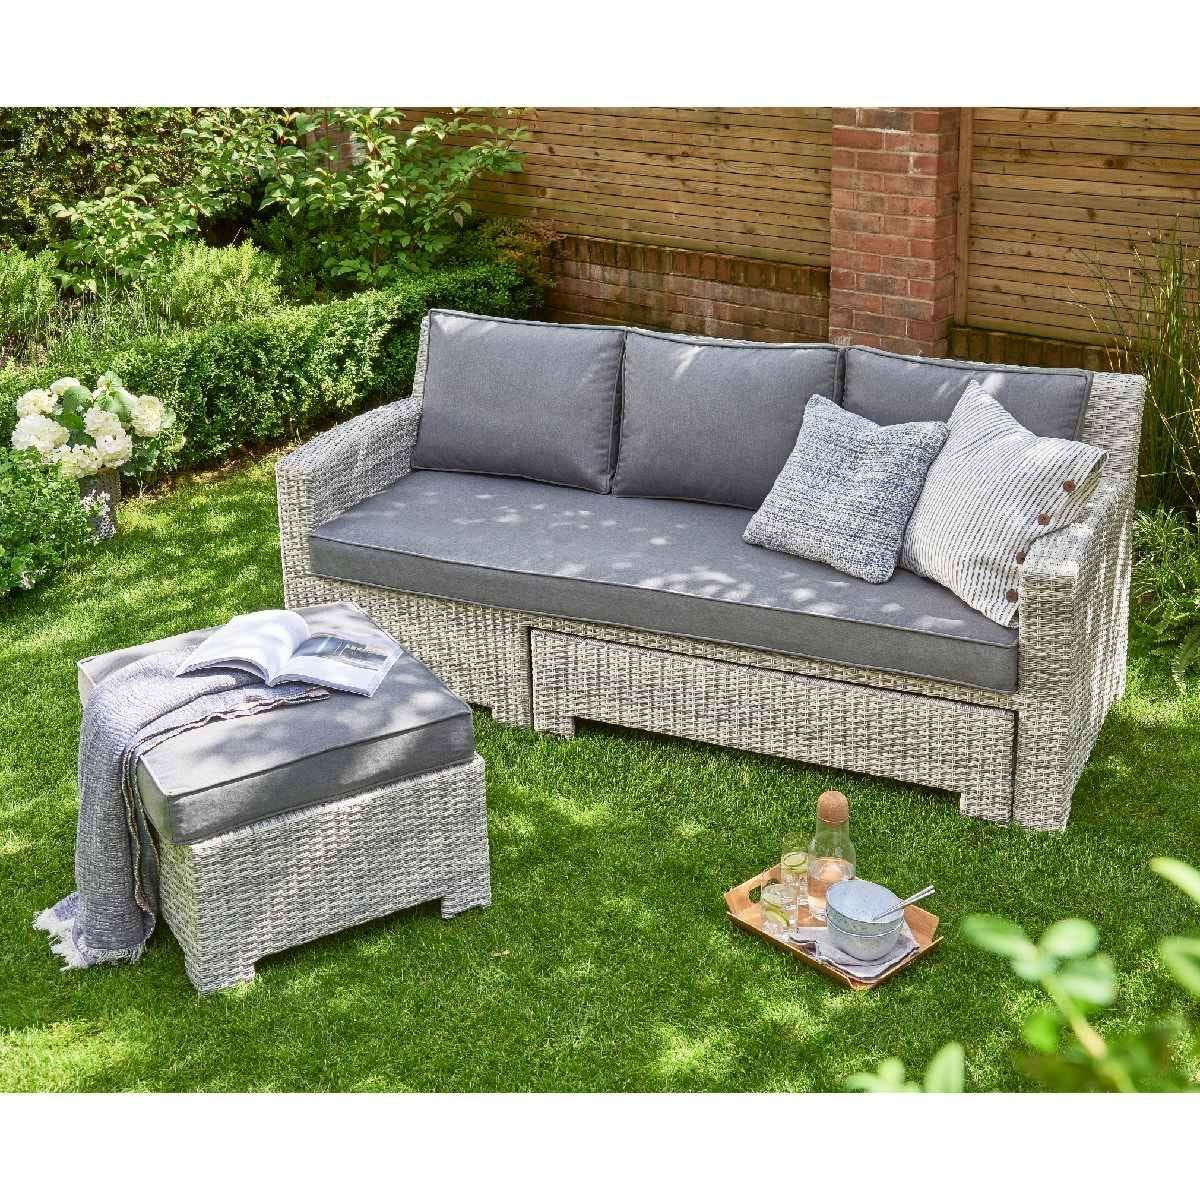 Norfolk Leisure Oxborough Outdoor Pull Out Lounge Sofa - Grey